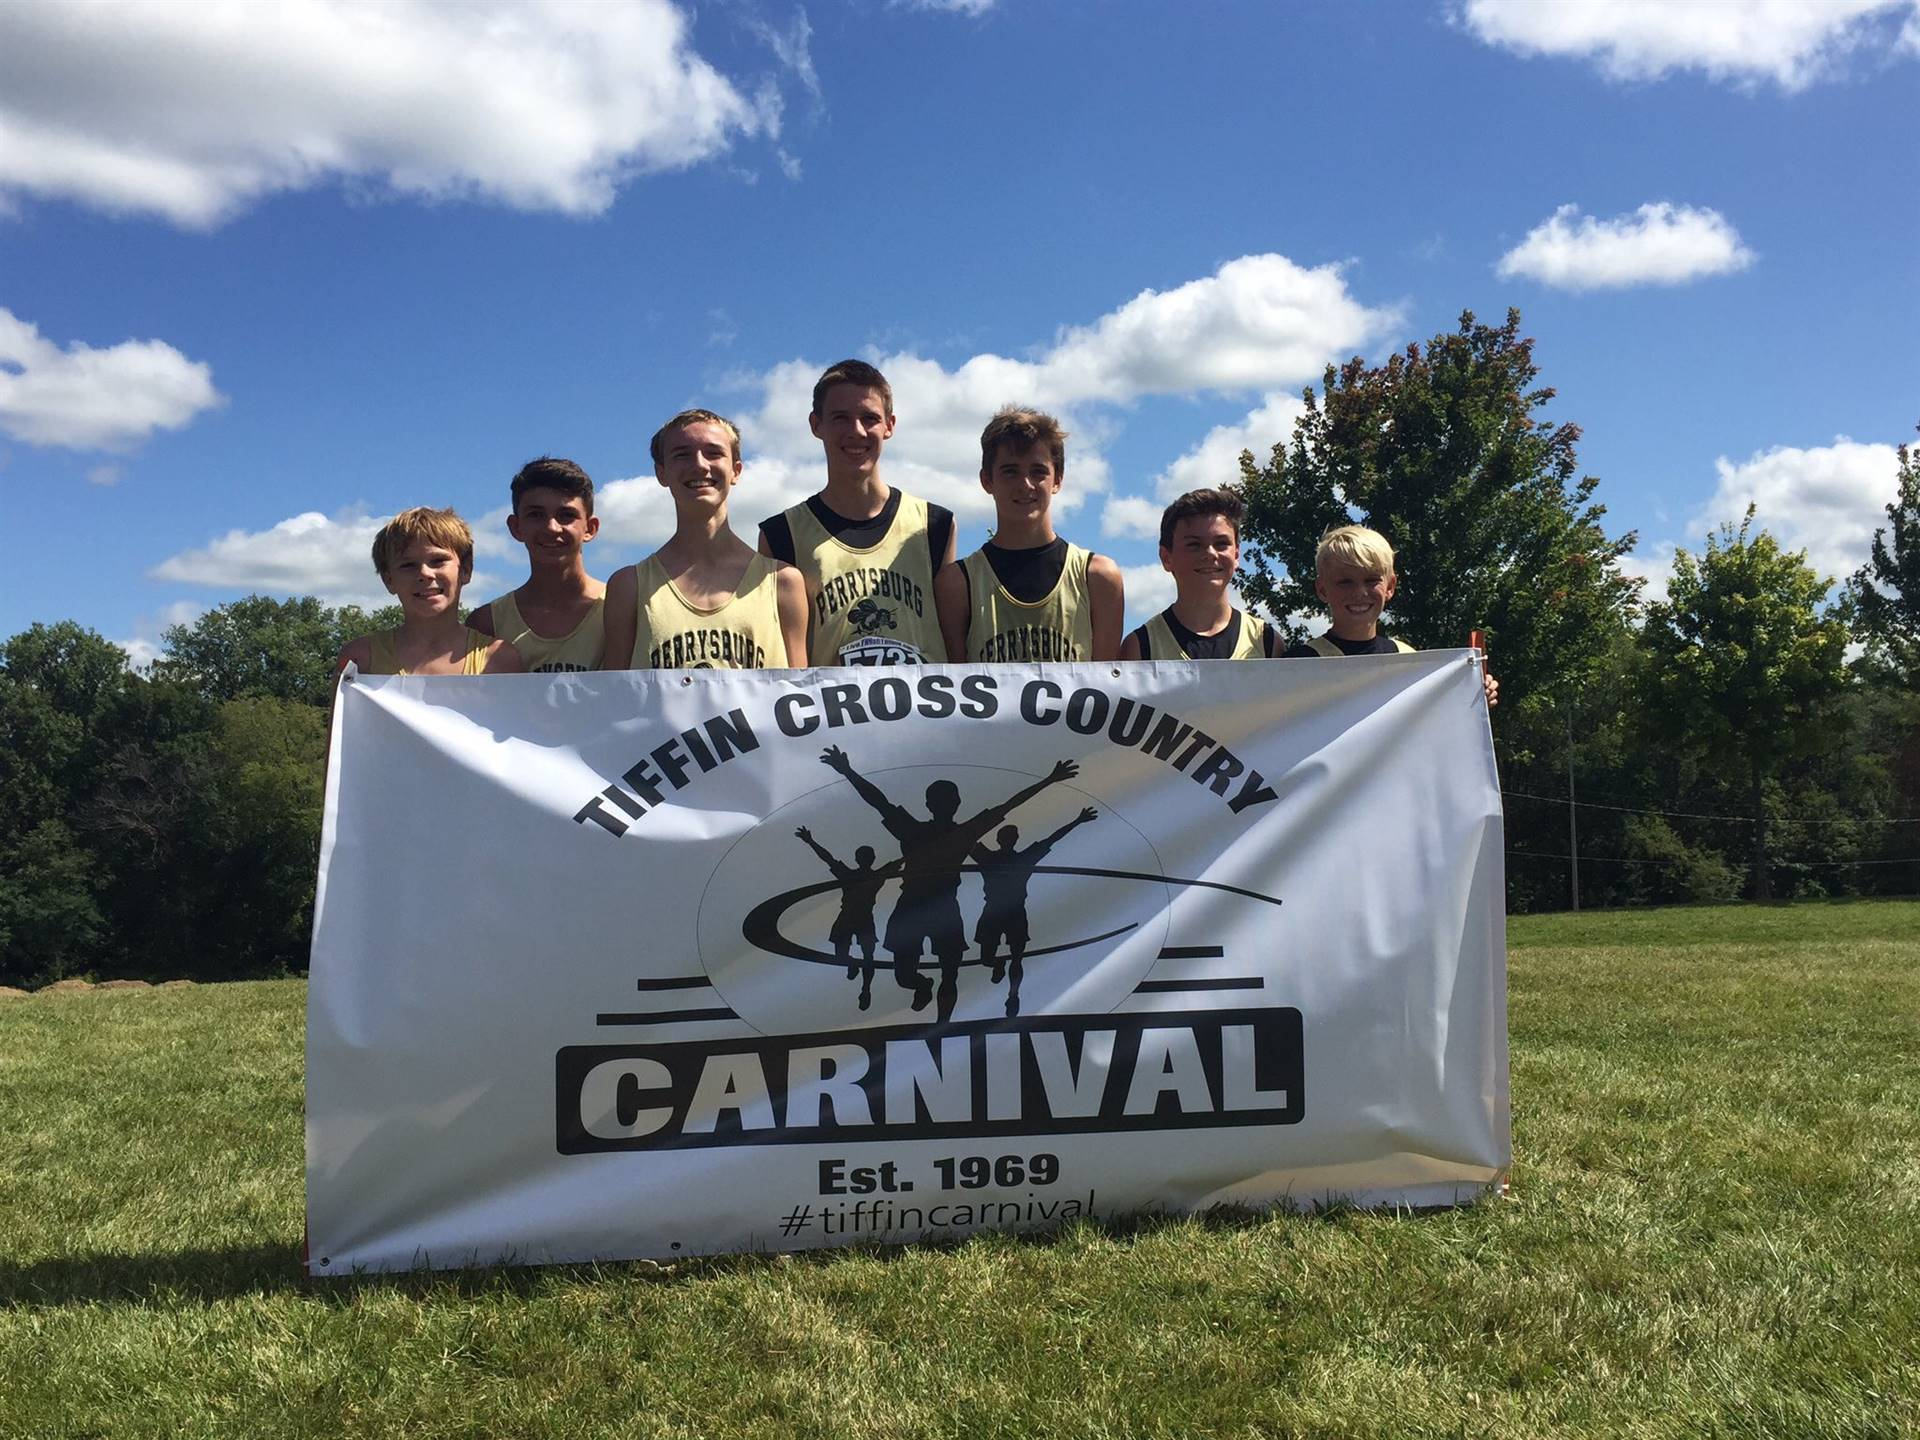 The PJHS Boys Cross Country team competed in the Tiffin Carnival.